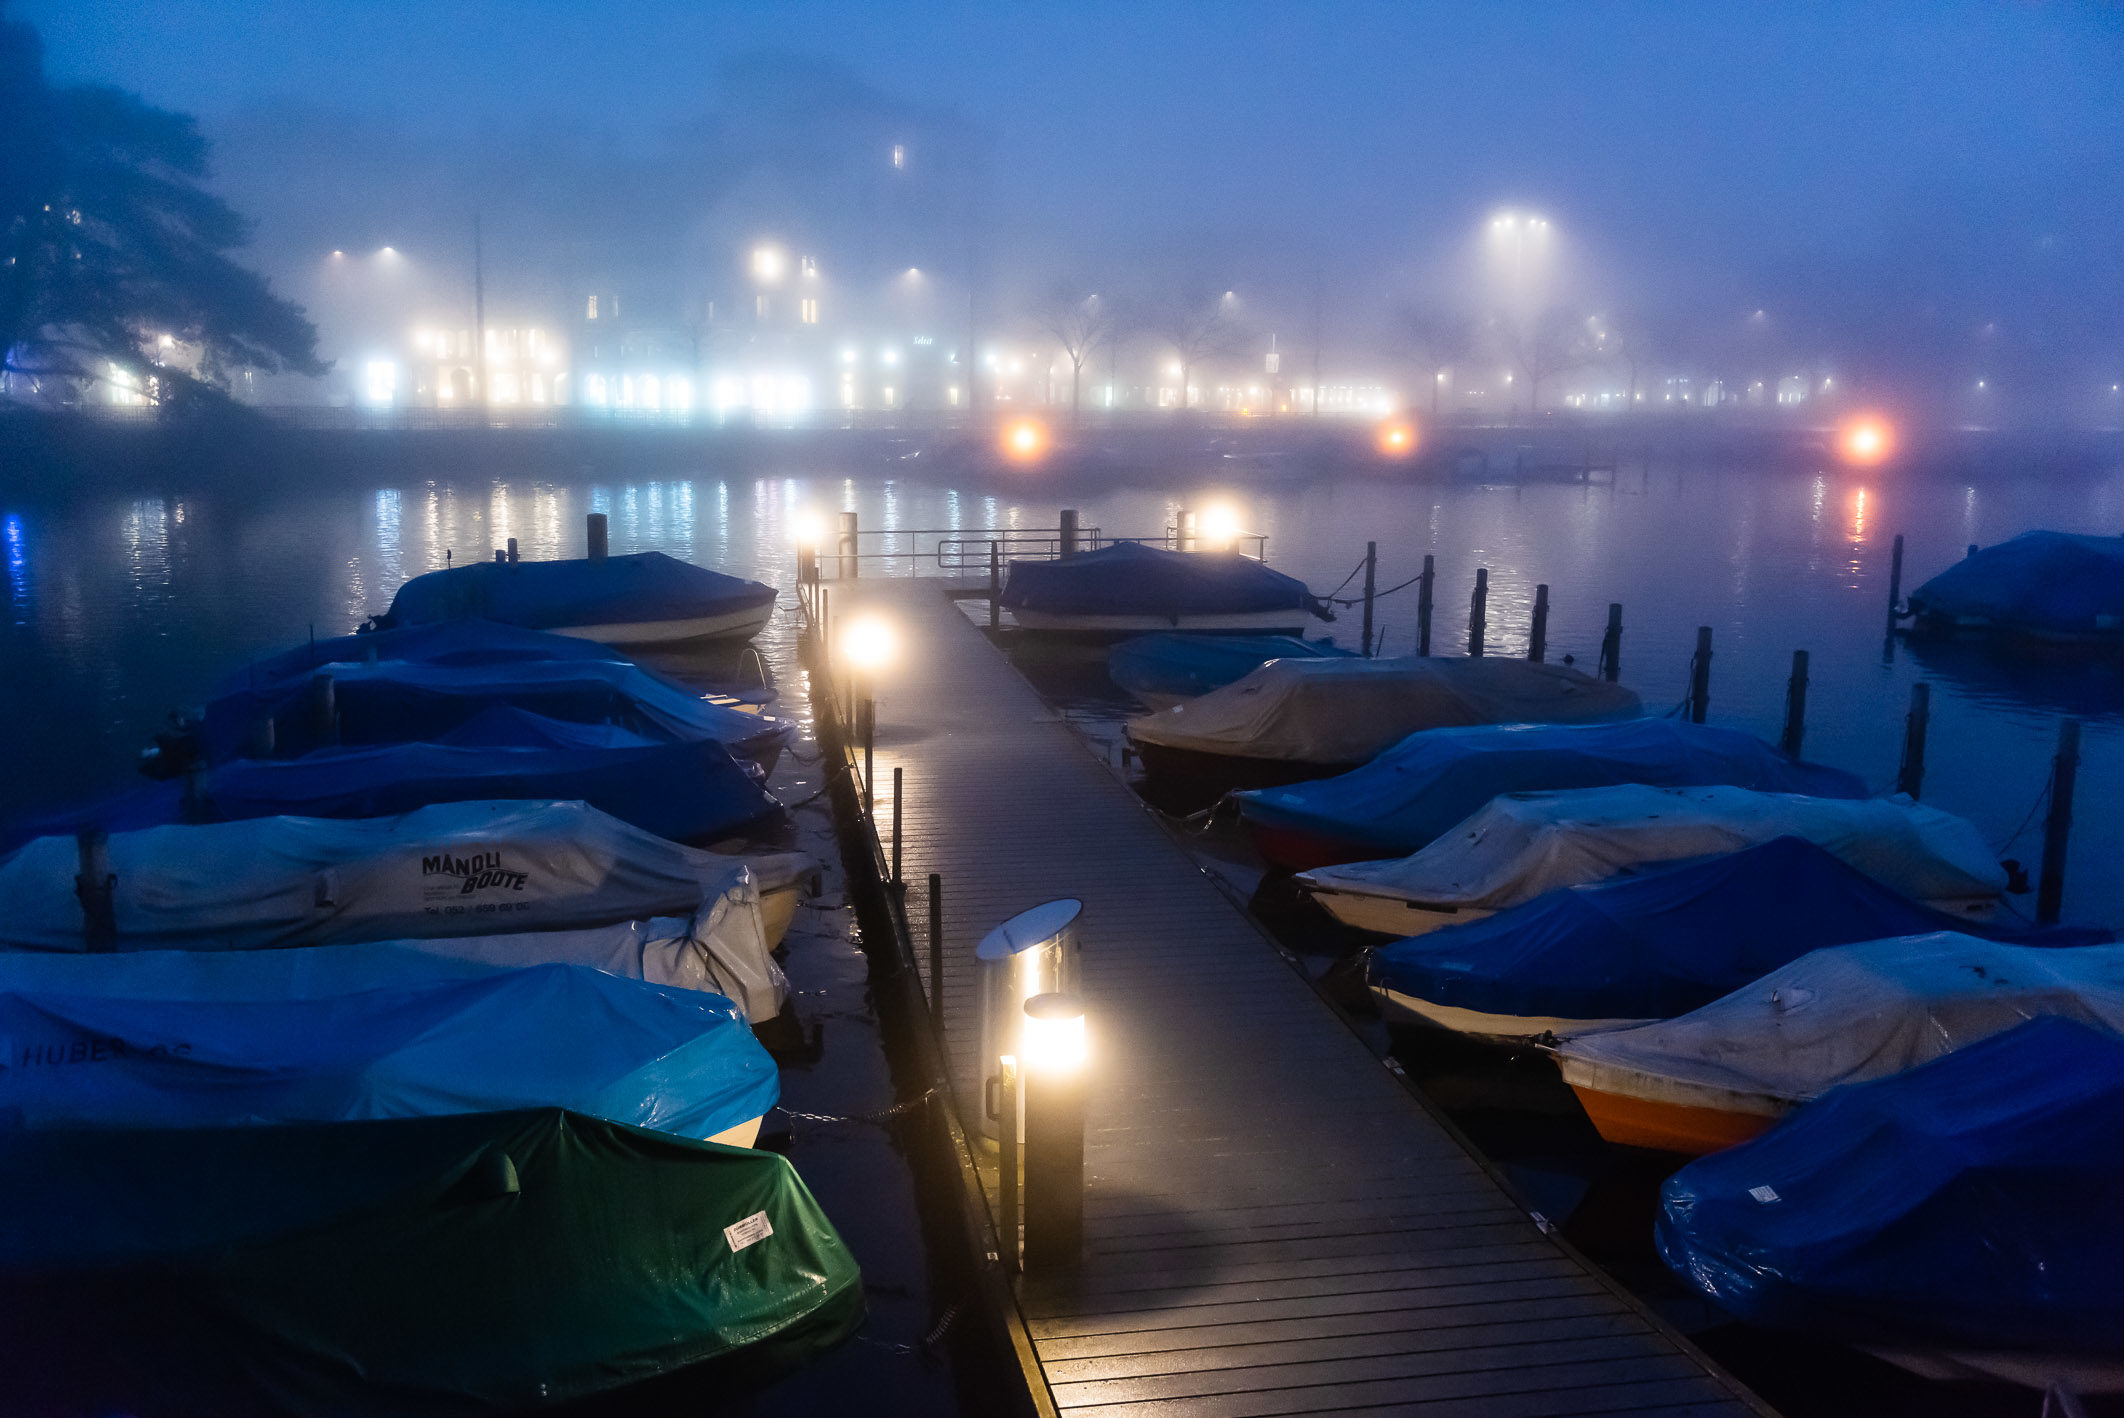 Boats in the Fog, Zürich, Switzerland